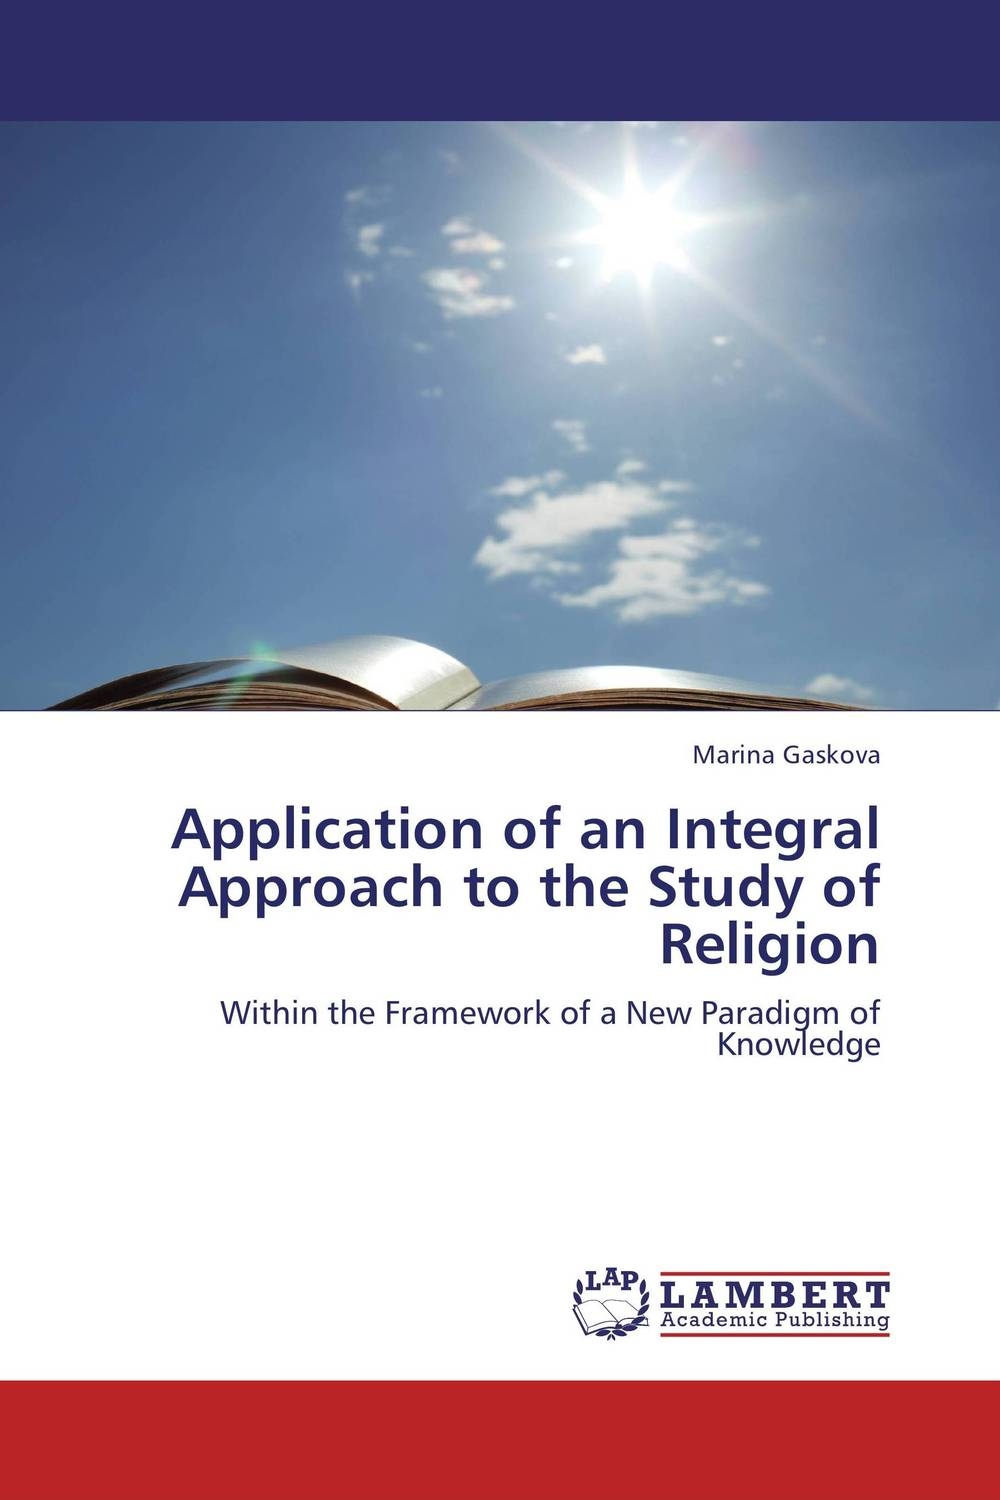 Application of an Integral Approach to the Study of Religion oxford studies in philosophy of religion volume 8